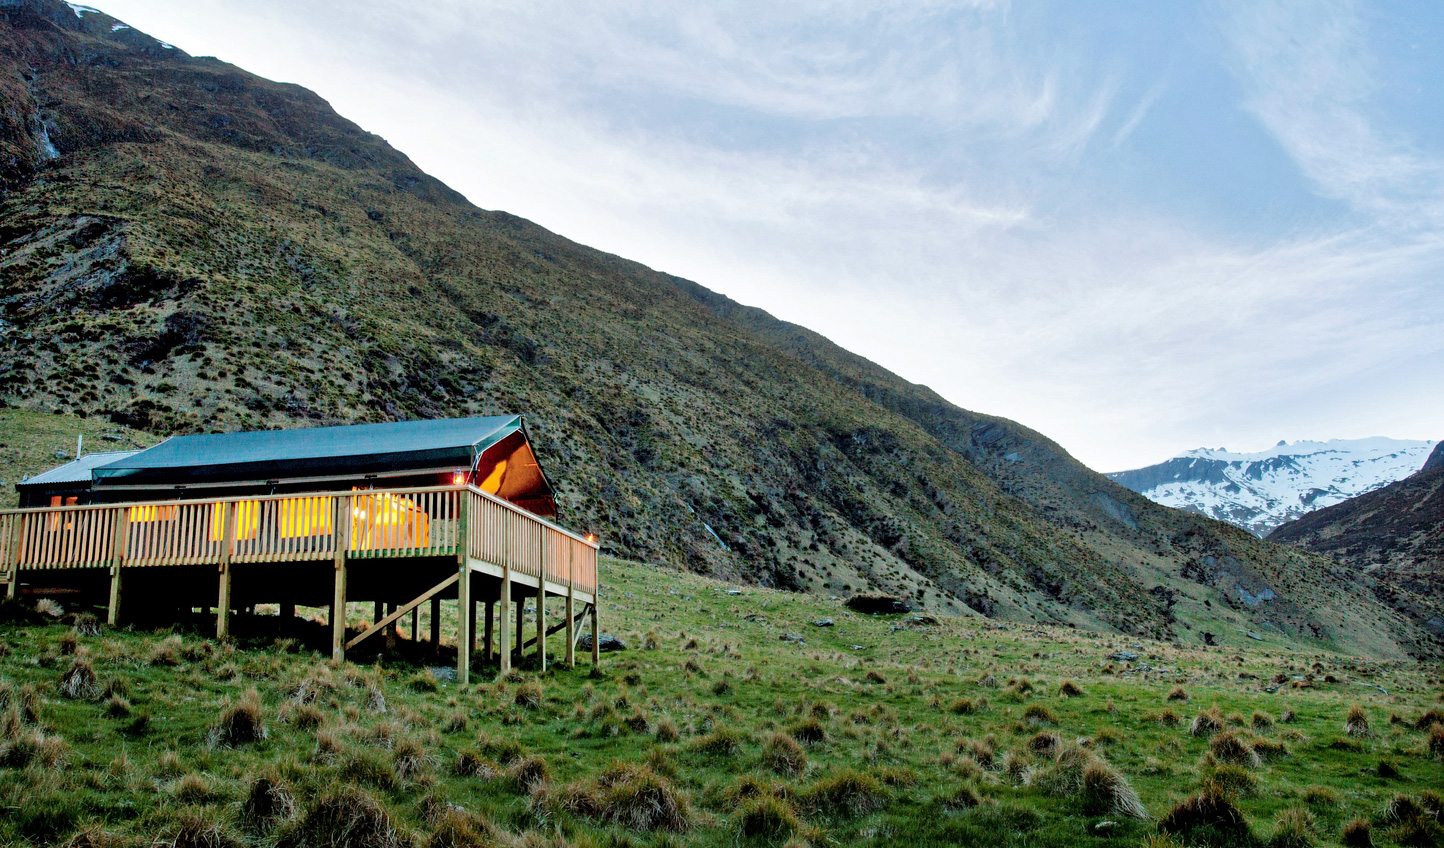 Escape to the wilderness at Minaret Station